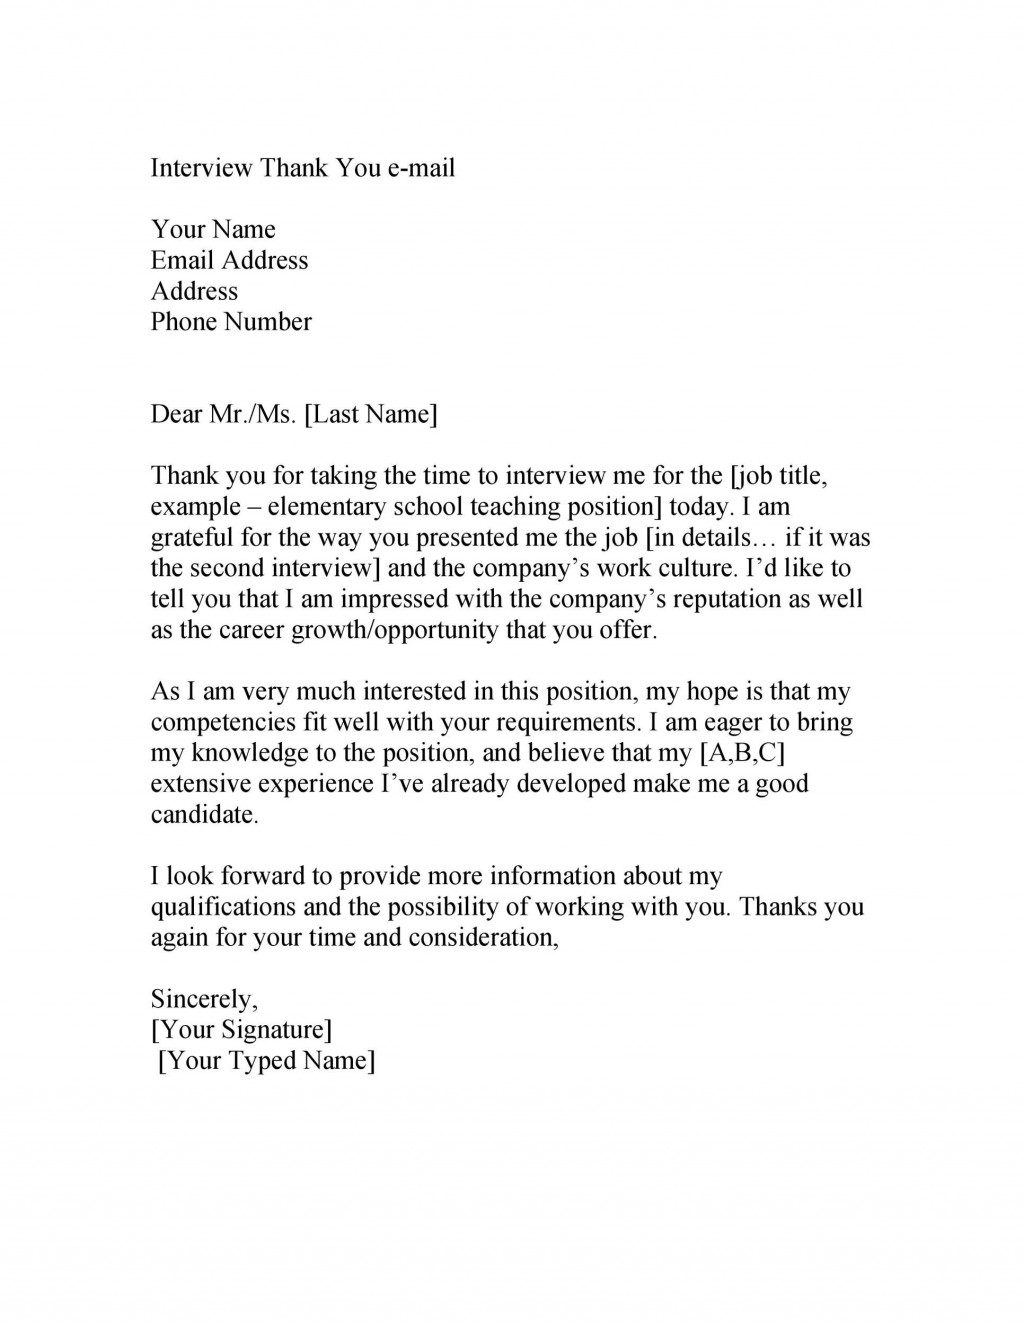 007 Archaicawful Thank You Note Template After Phone Interview High Definition  Sample Letter ExampleLarge